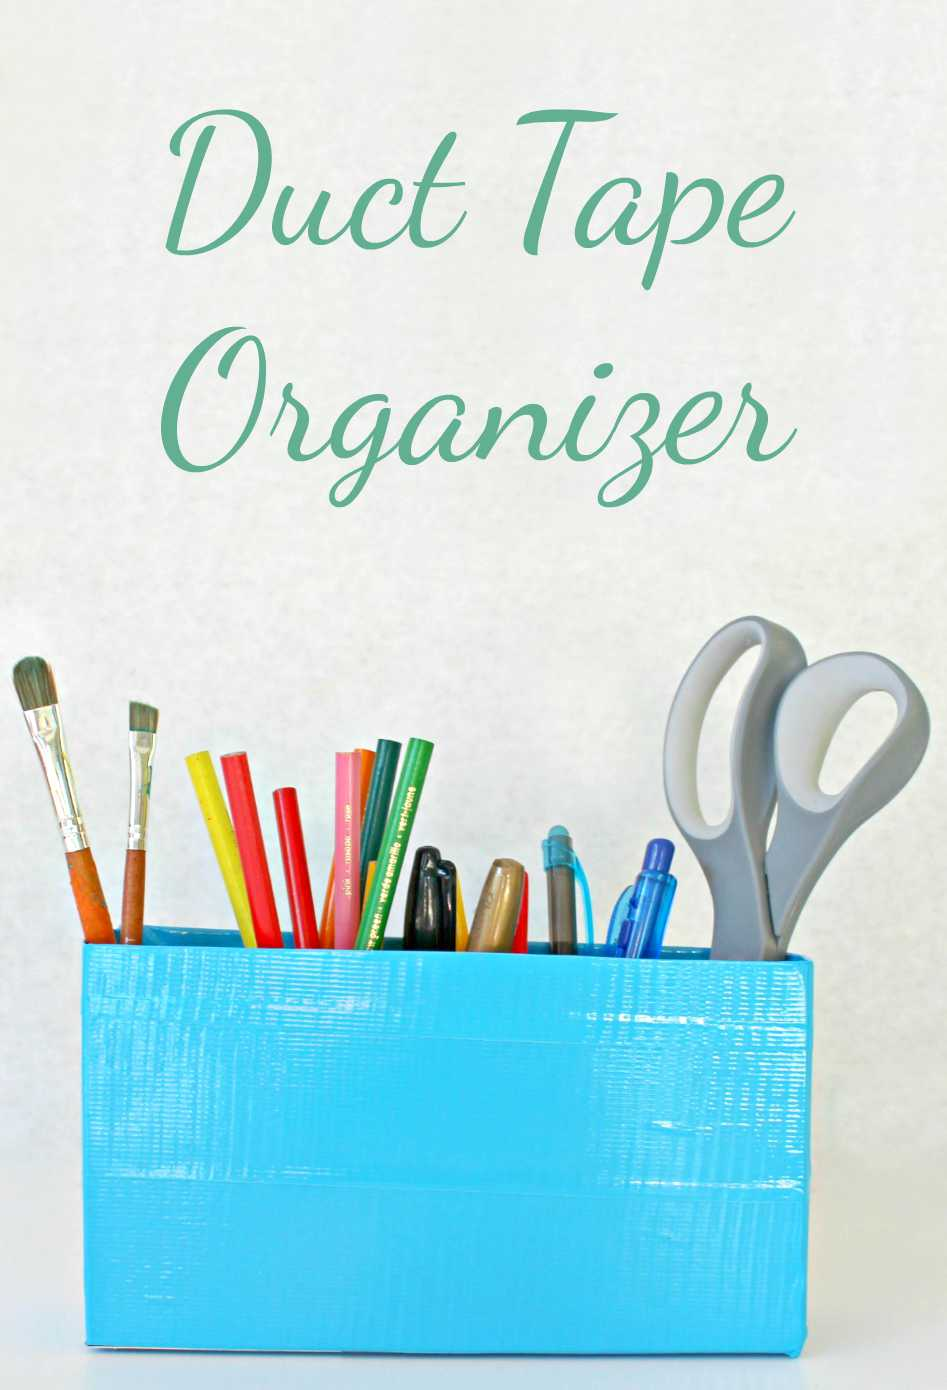 duct tape organizer using just a handful of supplies you most likely have on hand!